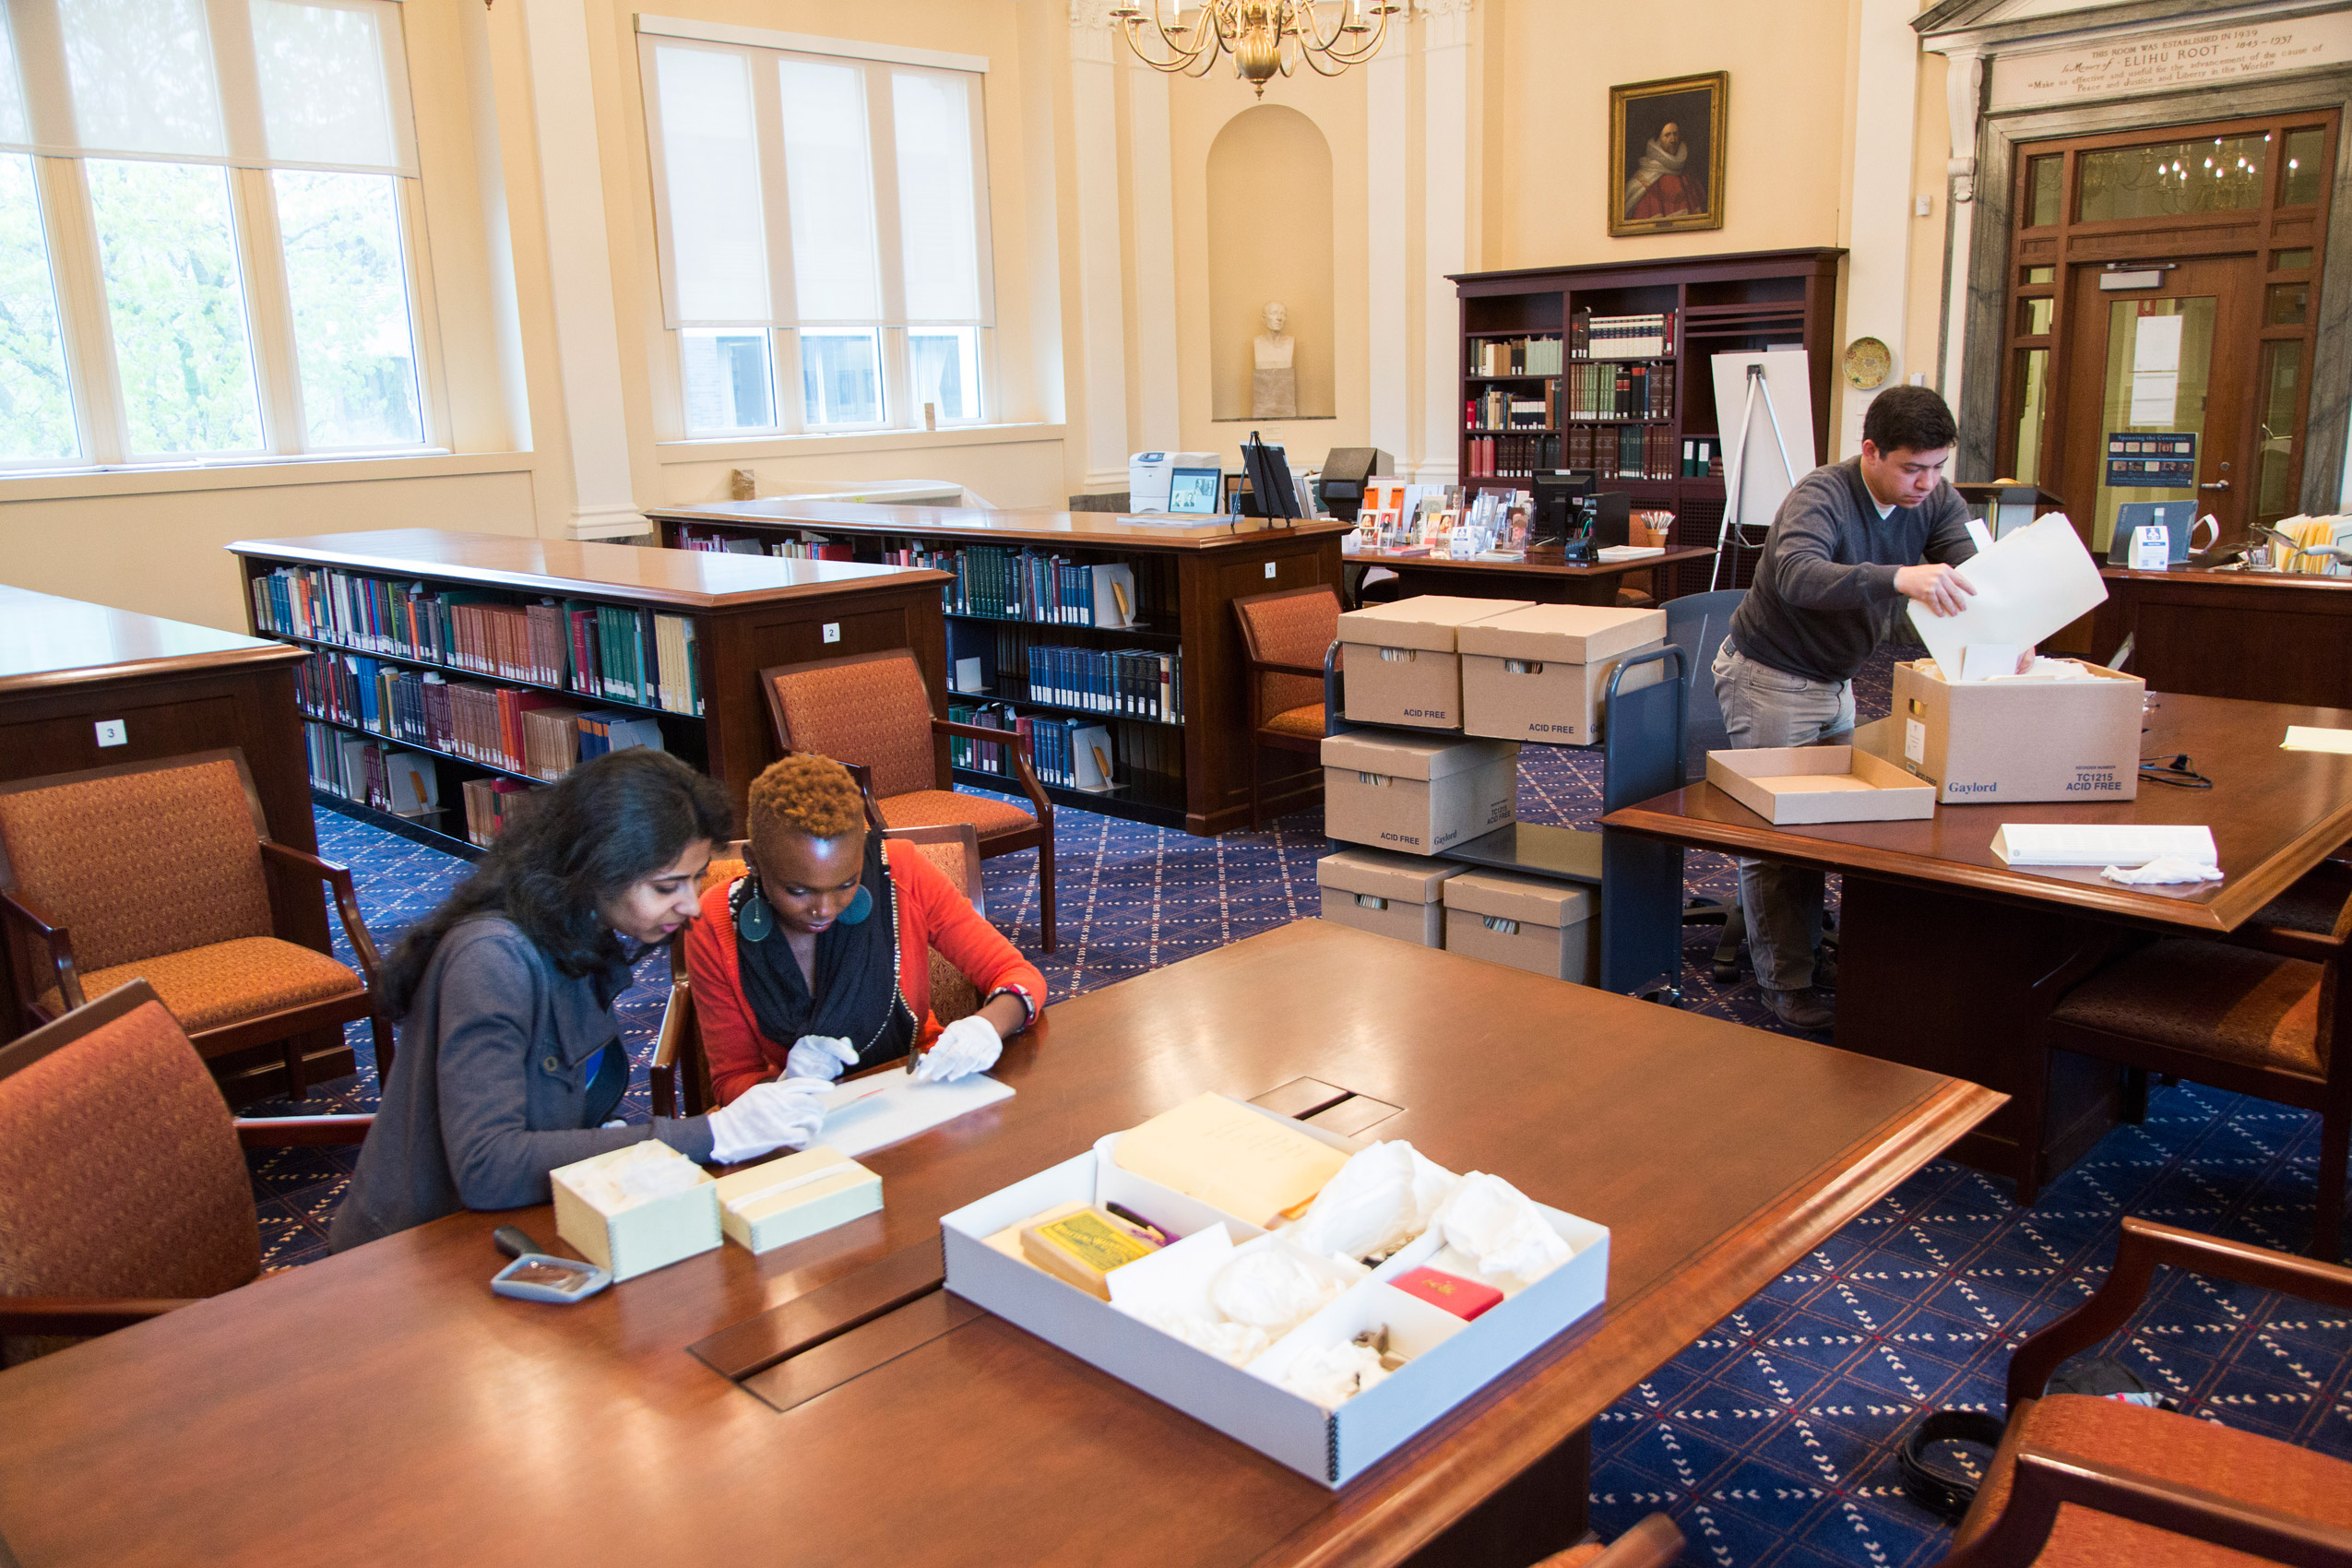 Photograph of researchers in the Historical & Special Collections reading room, the Root Room